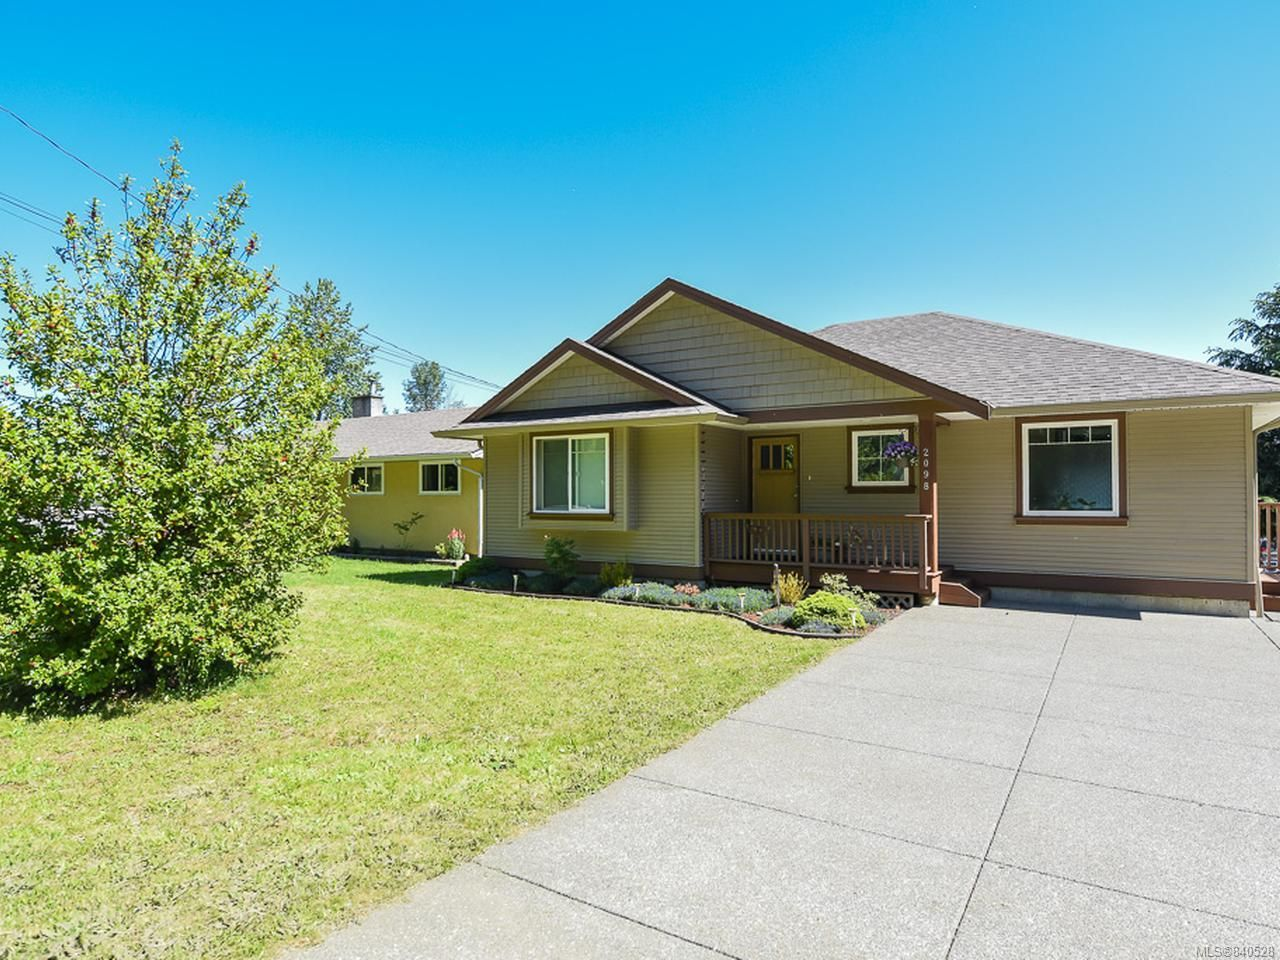 Main Photo: 2098 Arden Rd in COURTENAY: CV Courtenay City House for sale (Comox Valley)  : MLS®# 840528